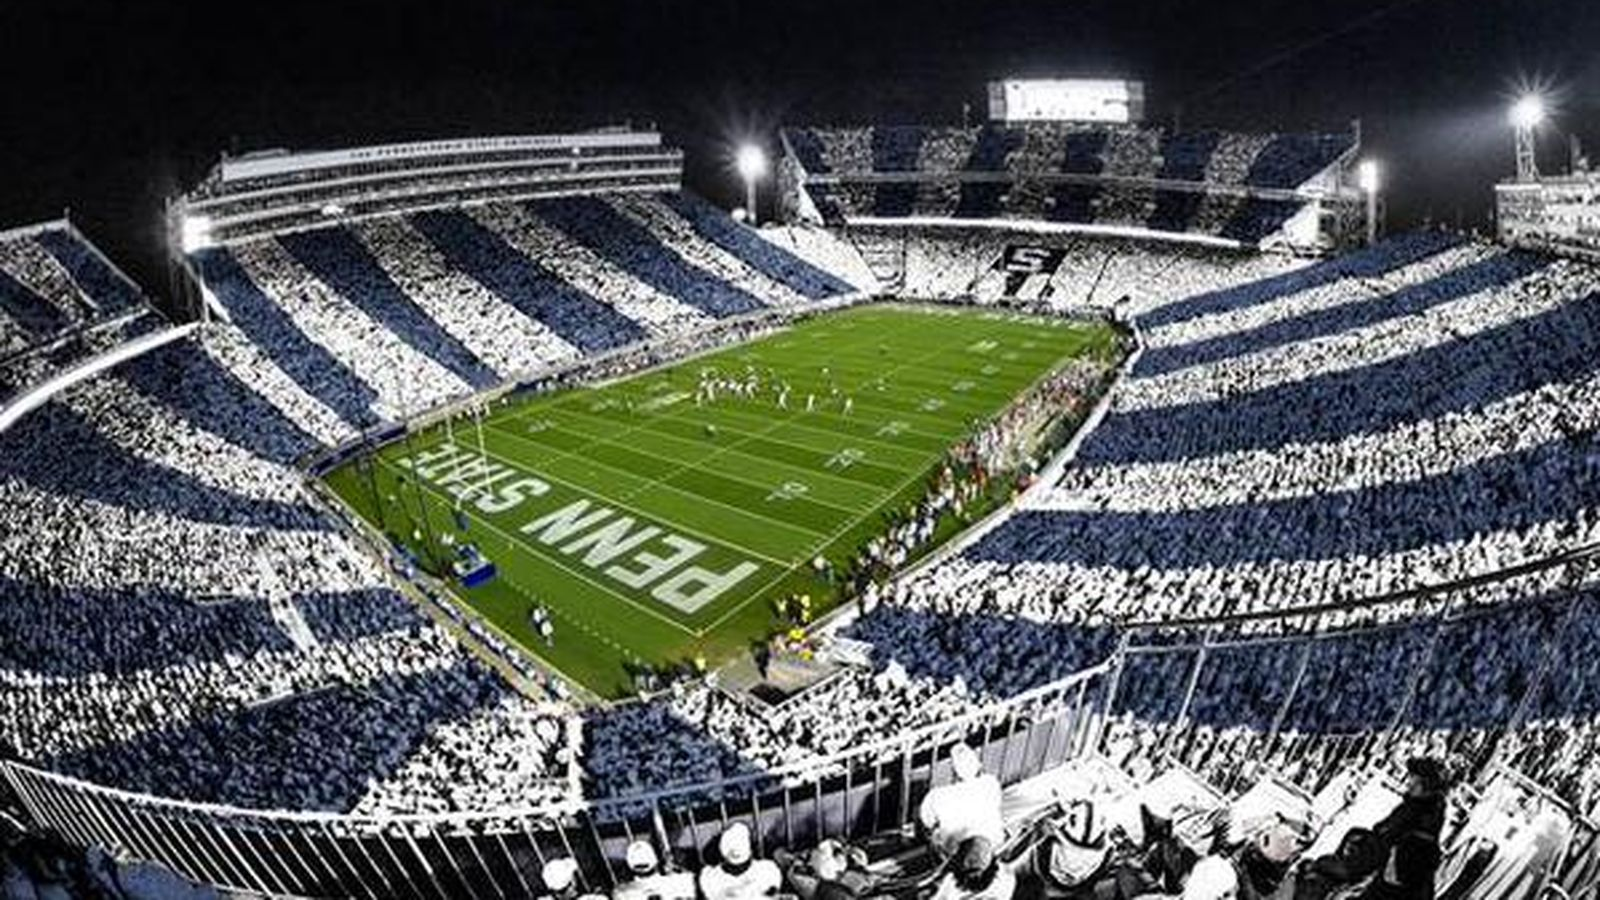 Michigan vs Penn State This is...ambitious | Colleges | Beaver stadium, Penn ...